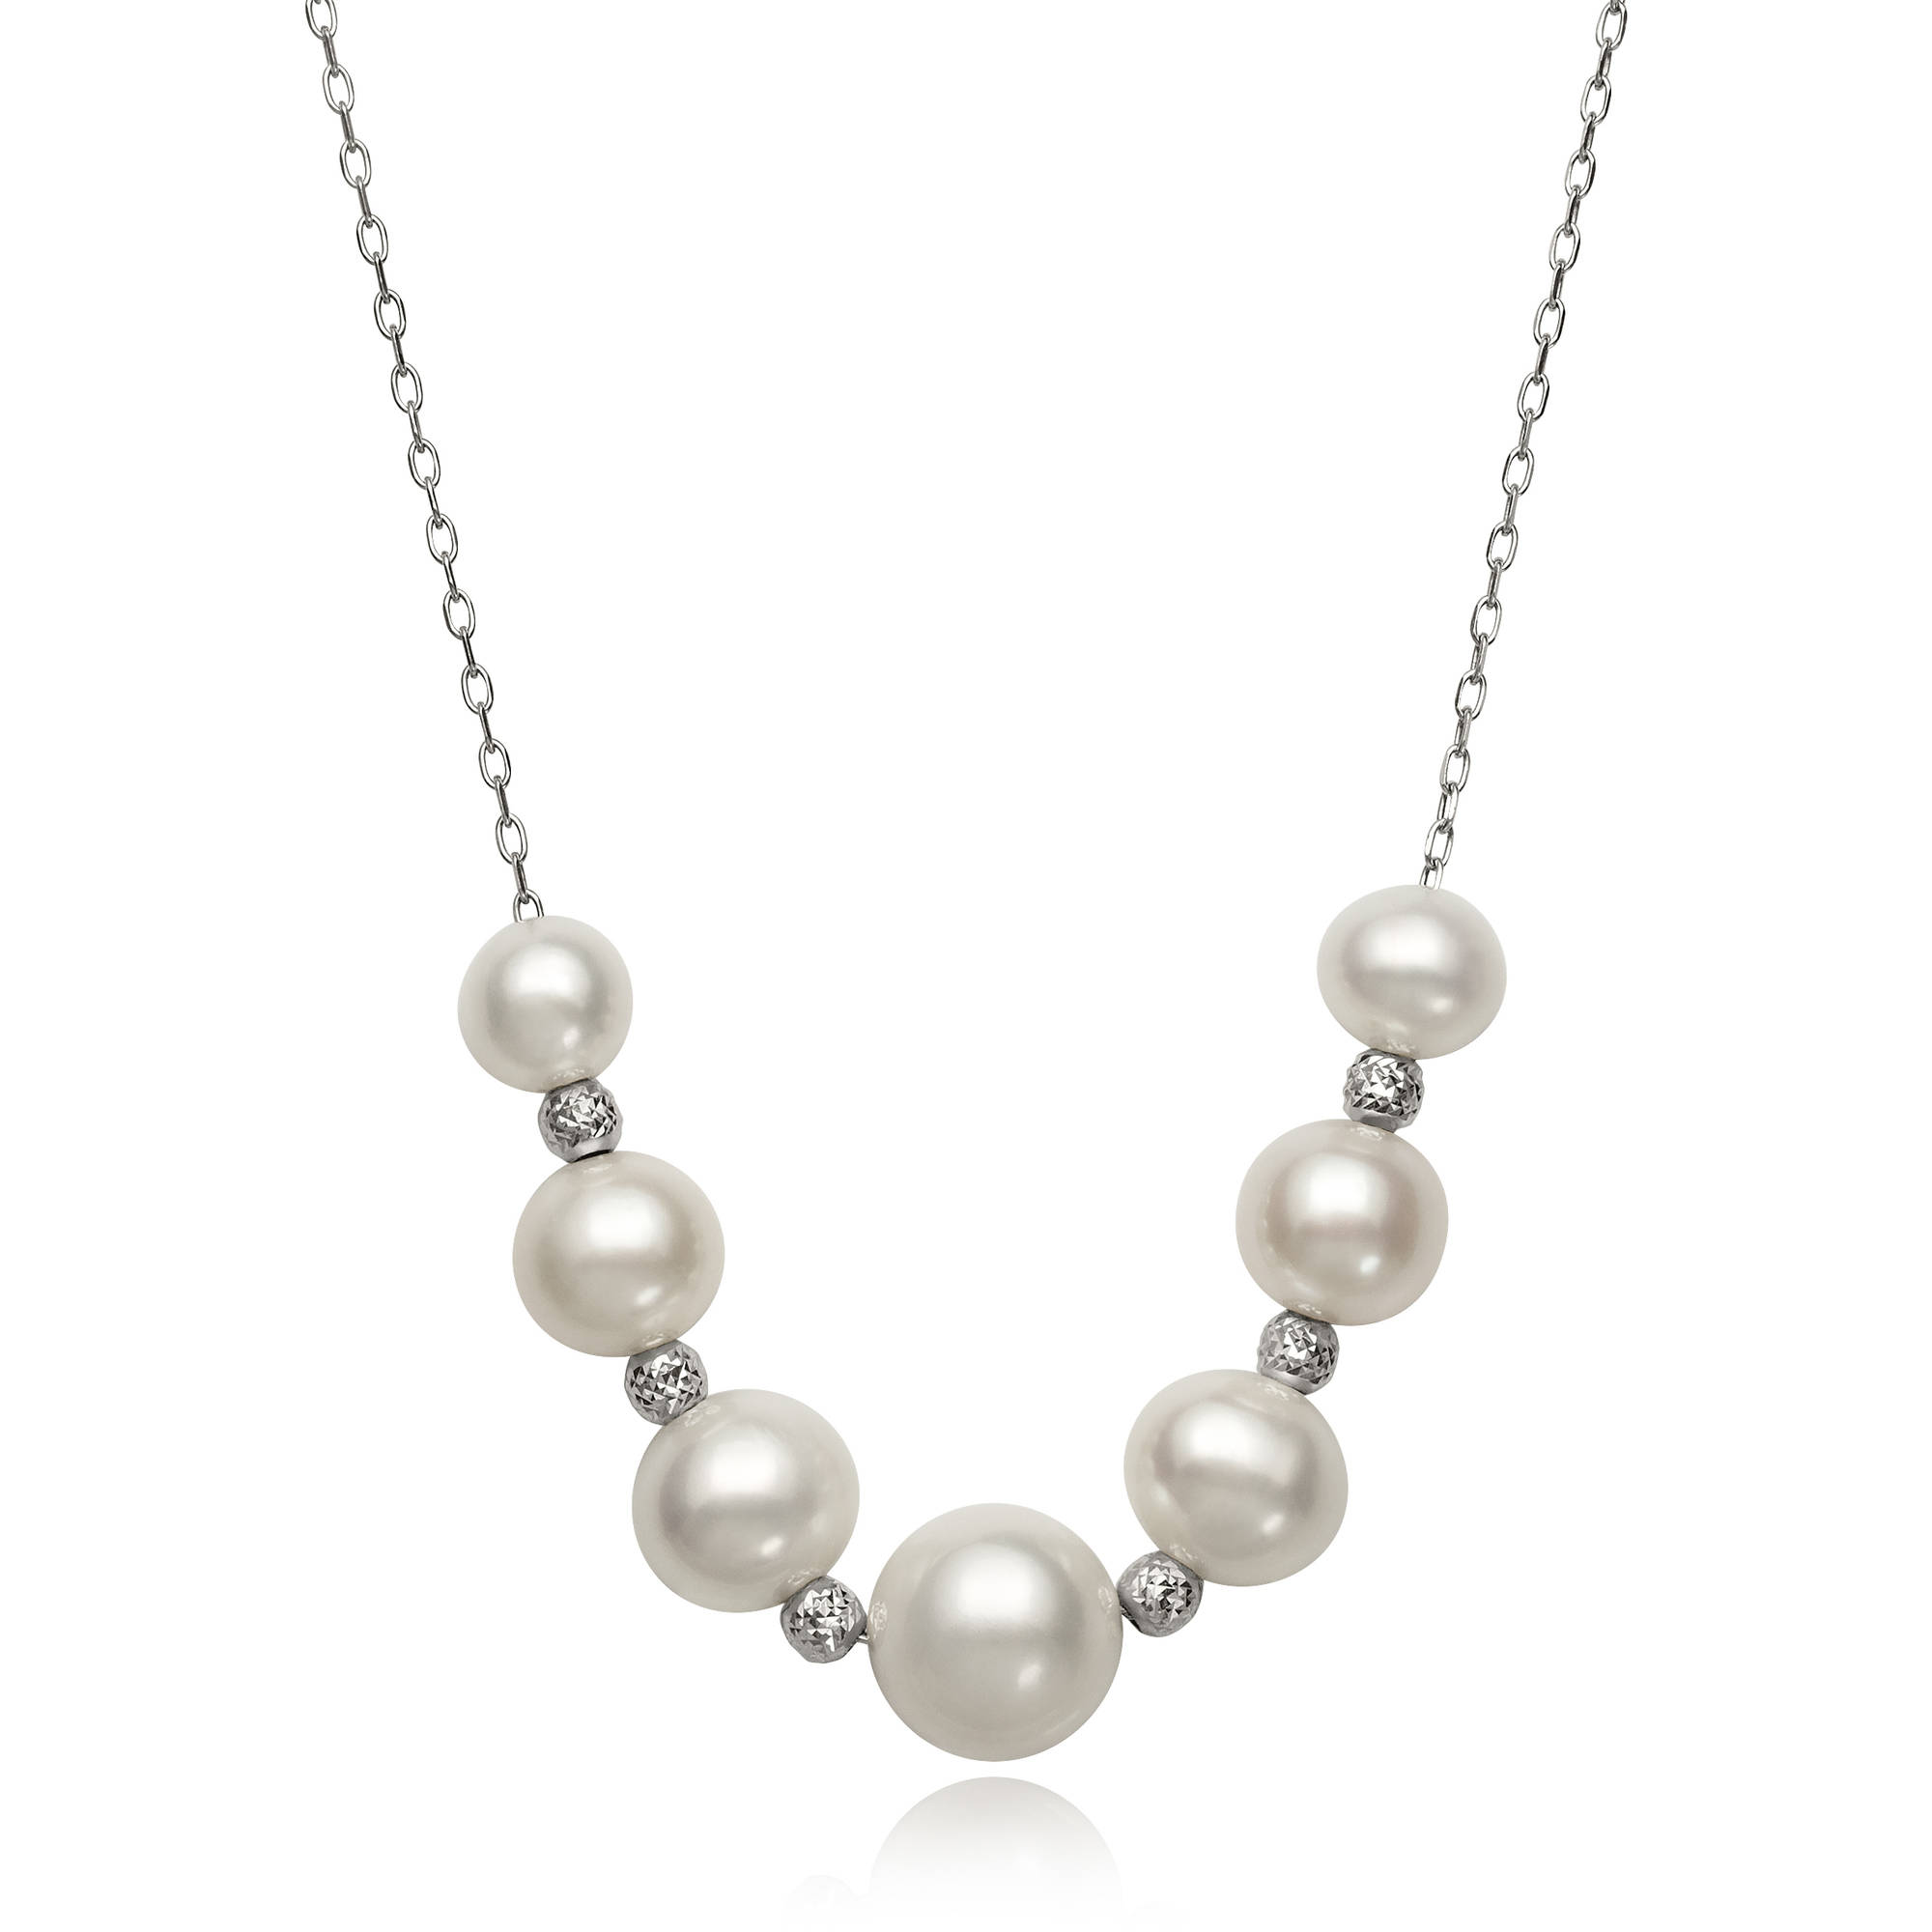 Graduated Cultured Freshwater Pearl and Faceted Bead Sterling Silver Chain Necklace, 18